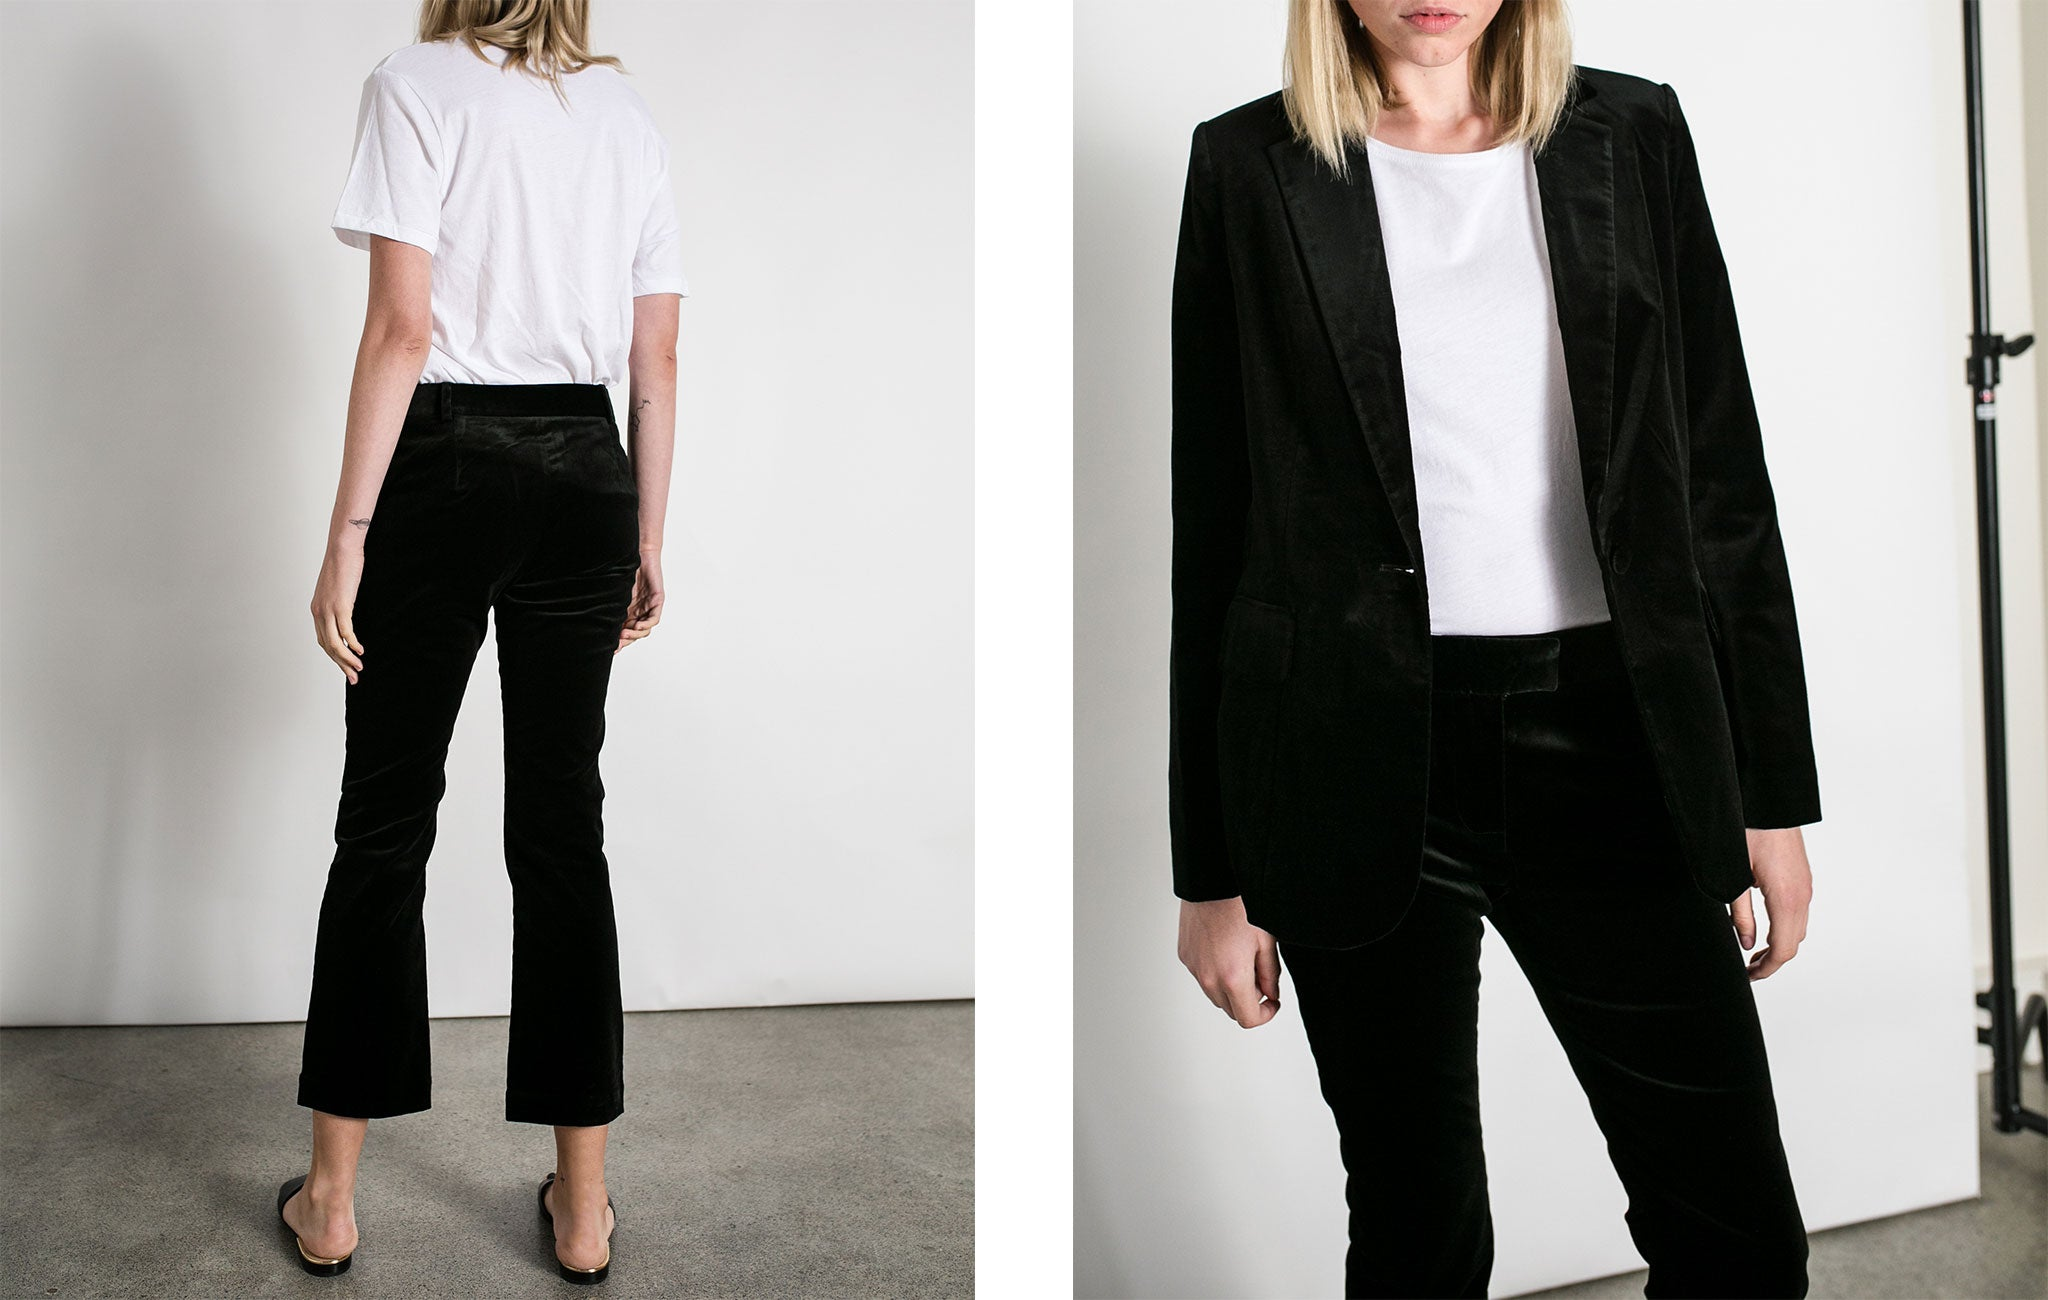 Frame denim la velvet mod suit jacket and black crop flare pants